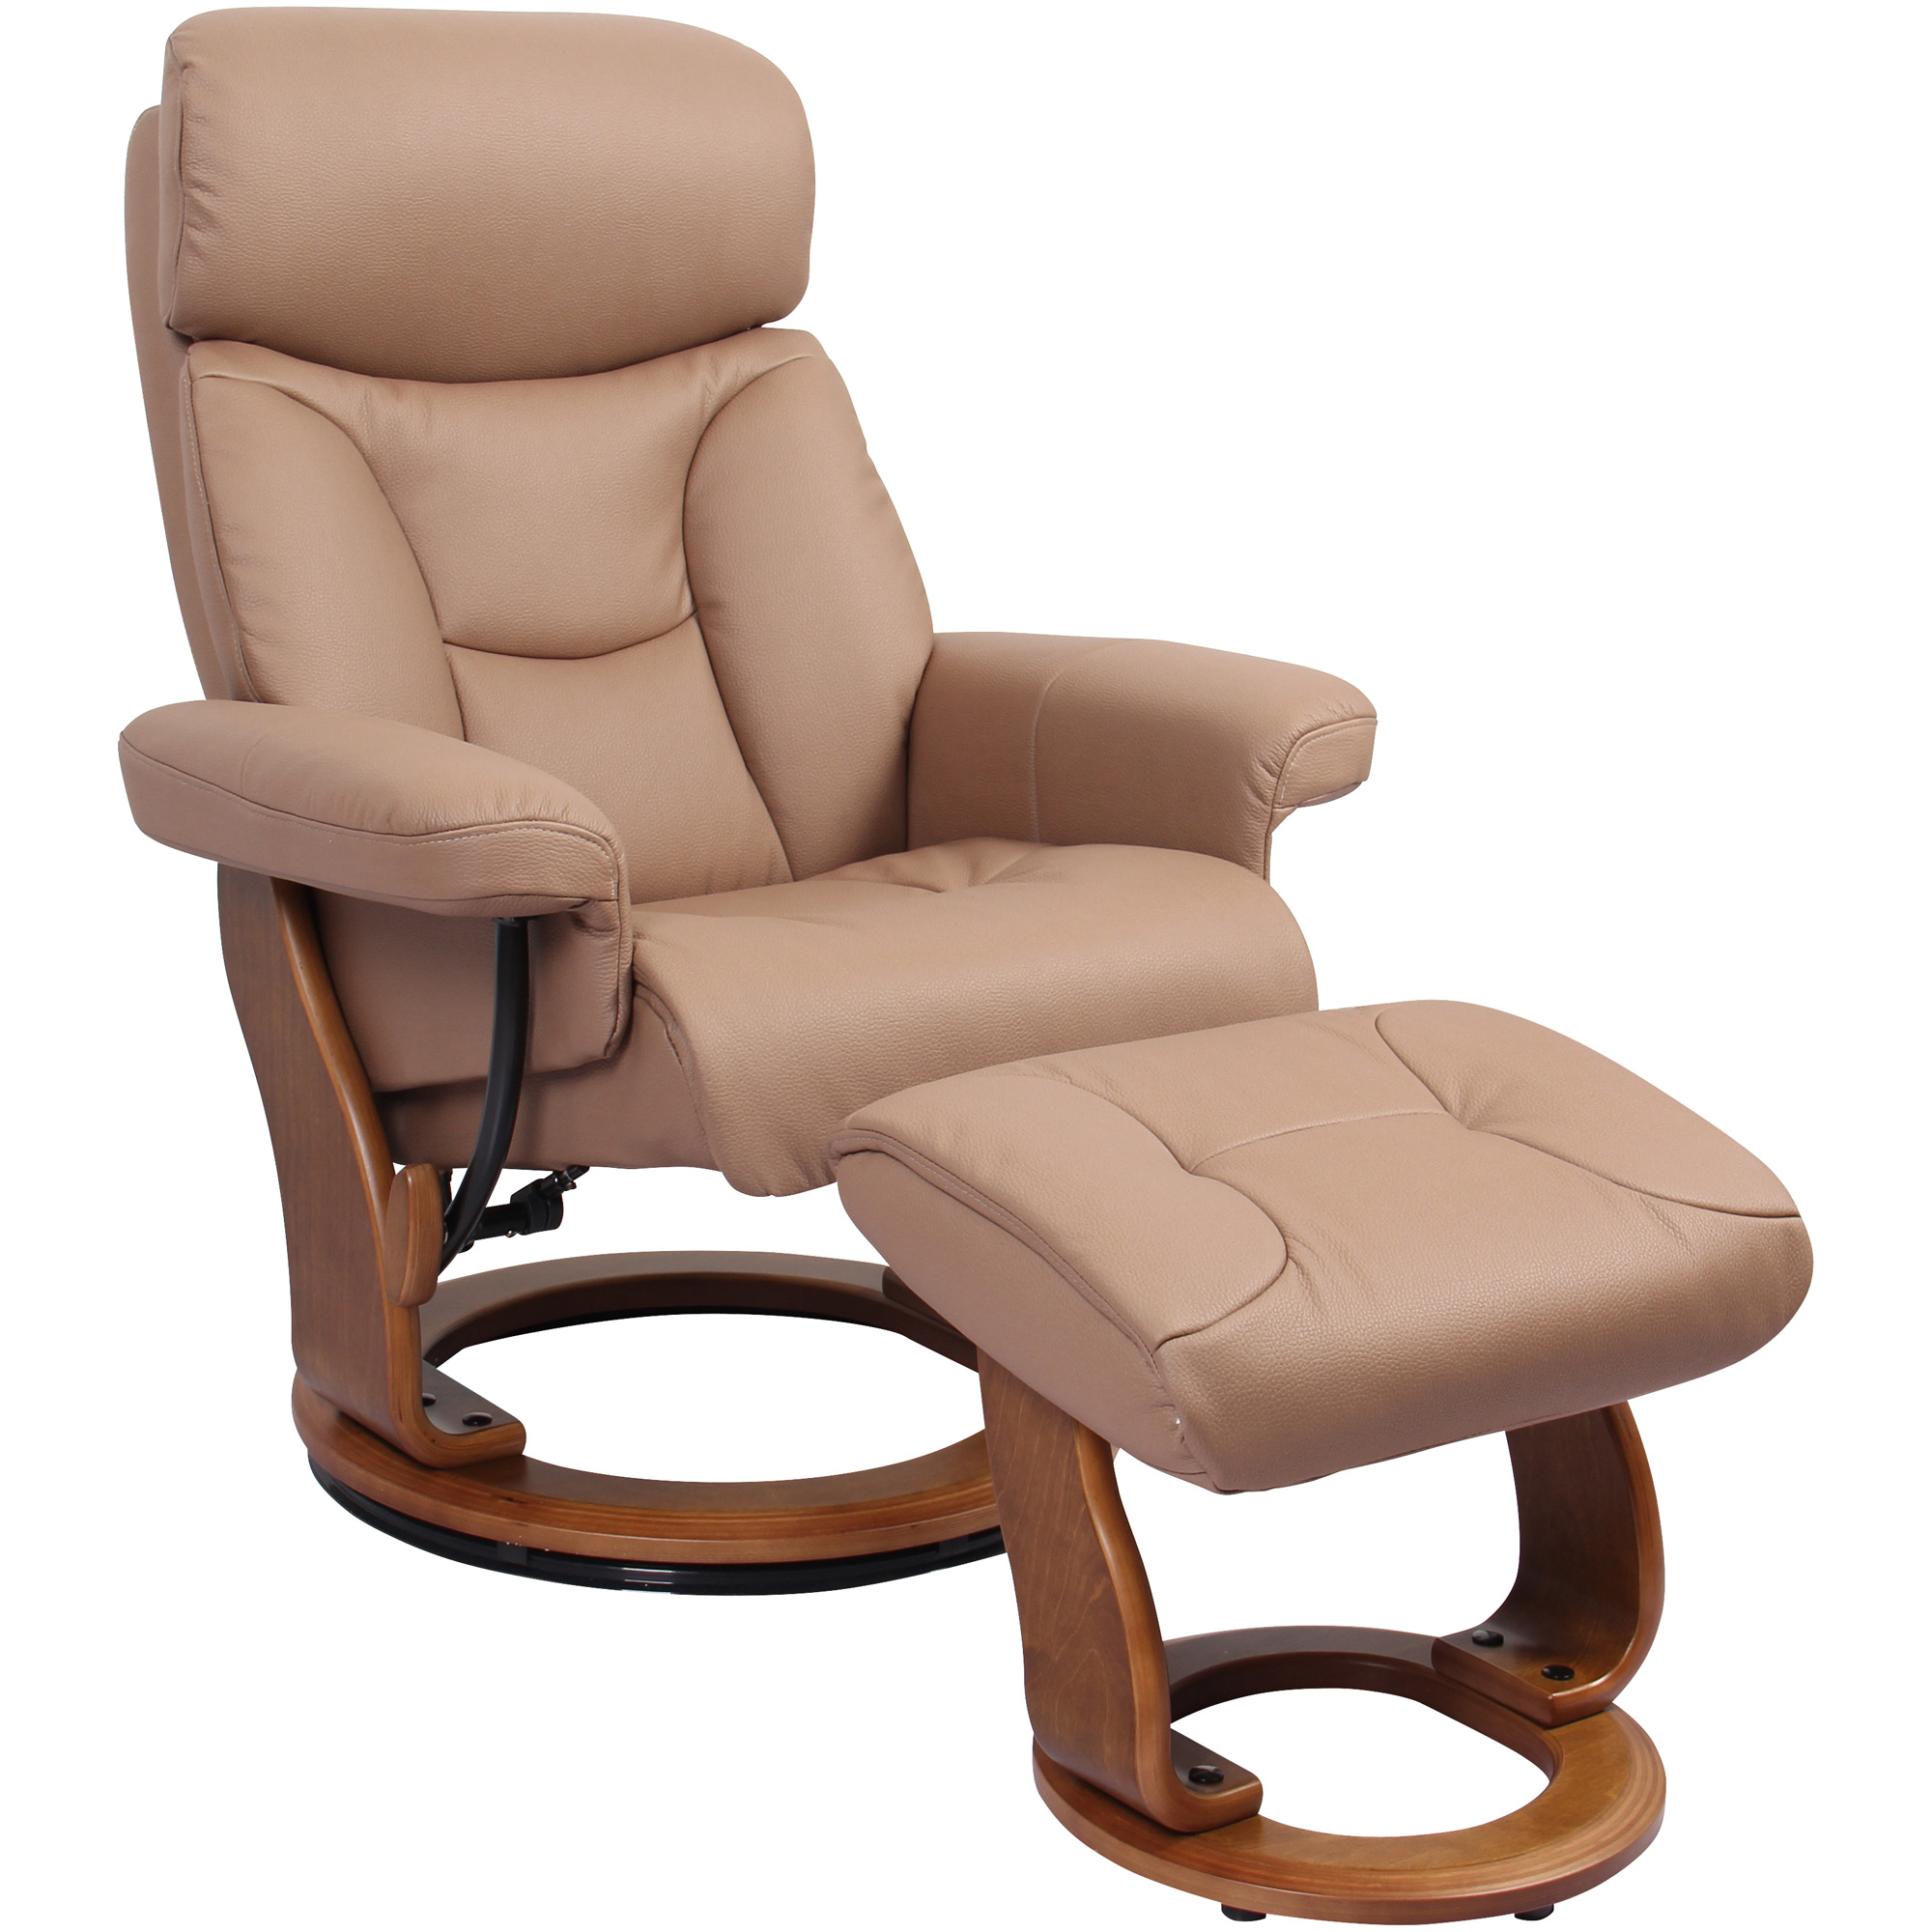 Benchmaster | Emmie Cocoa Recliner Chair with Ottoman